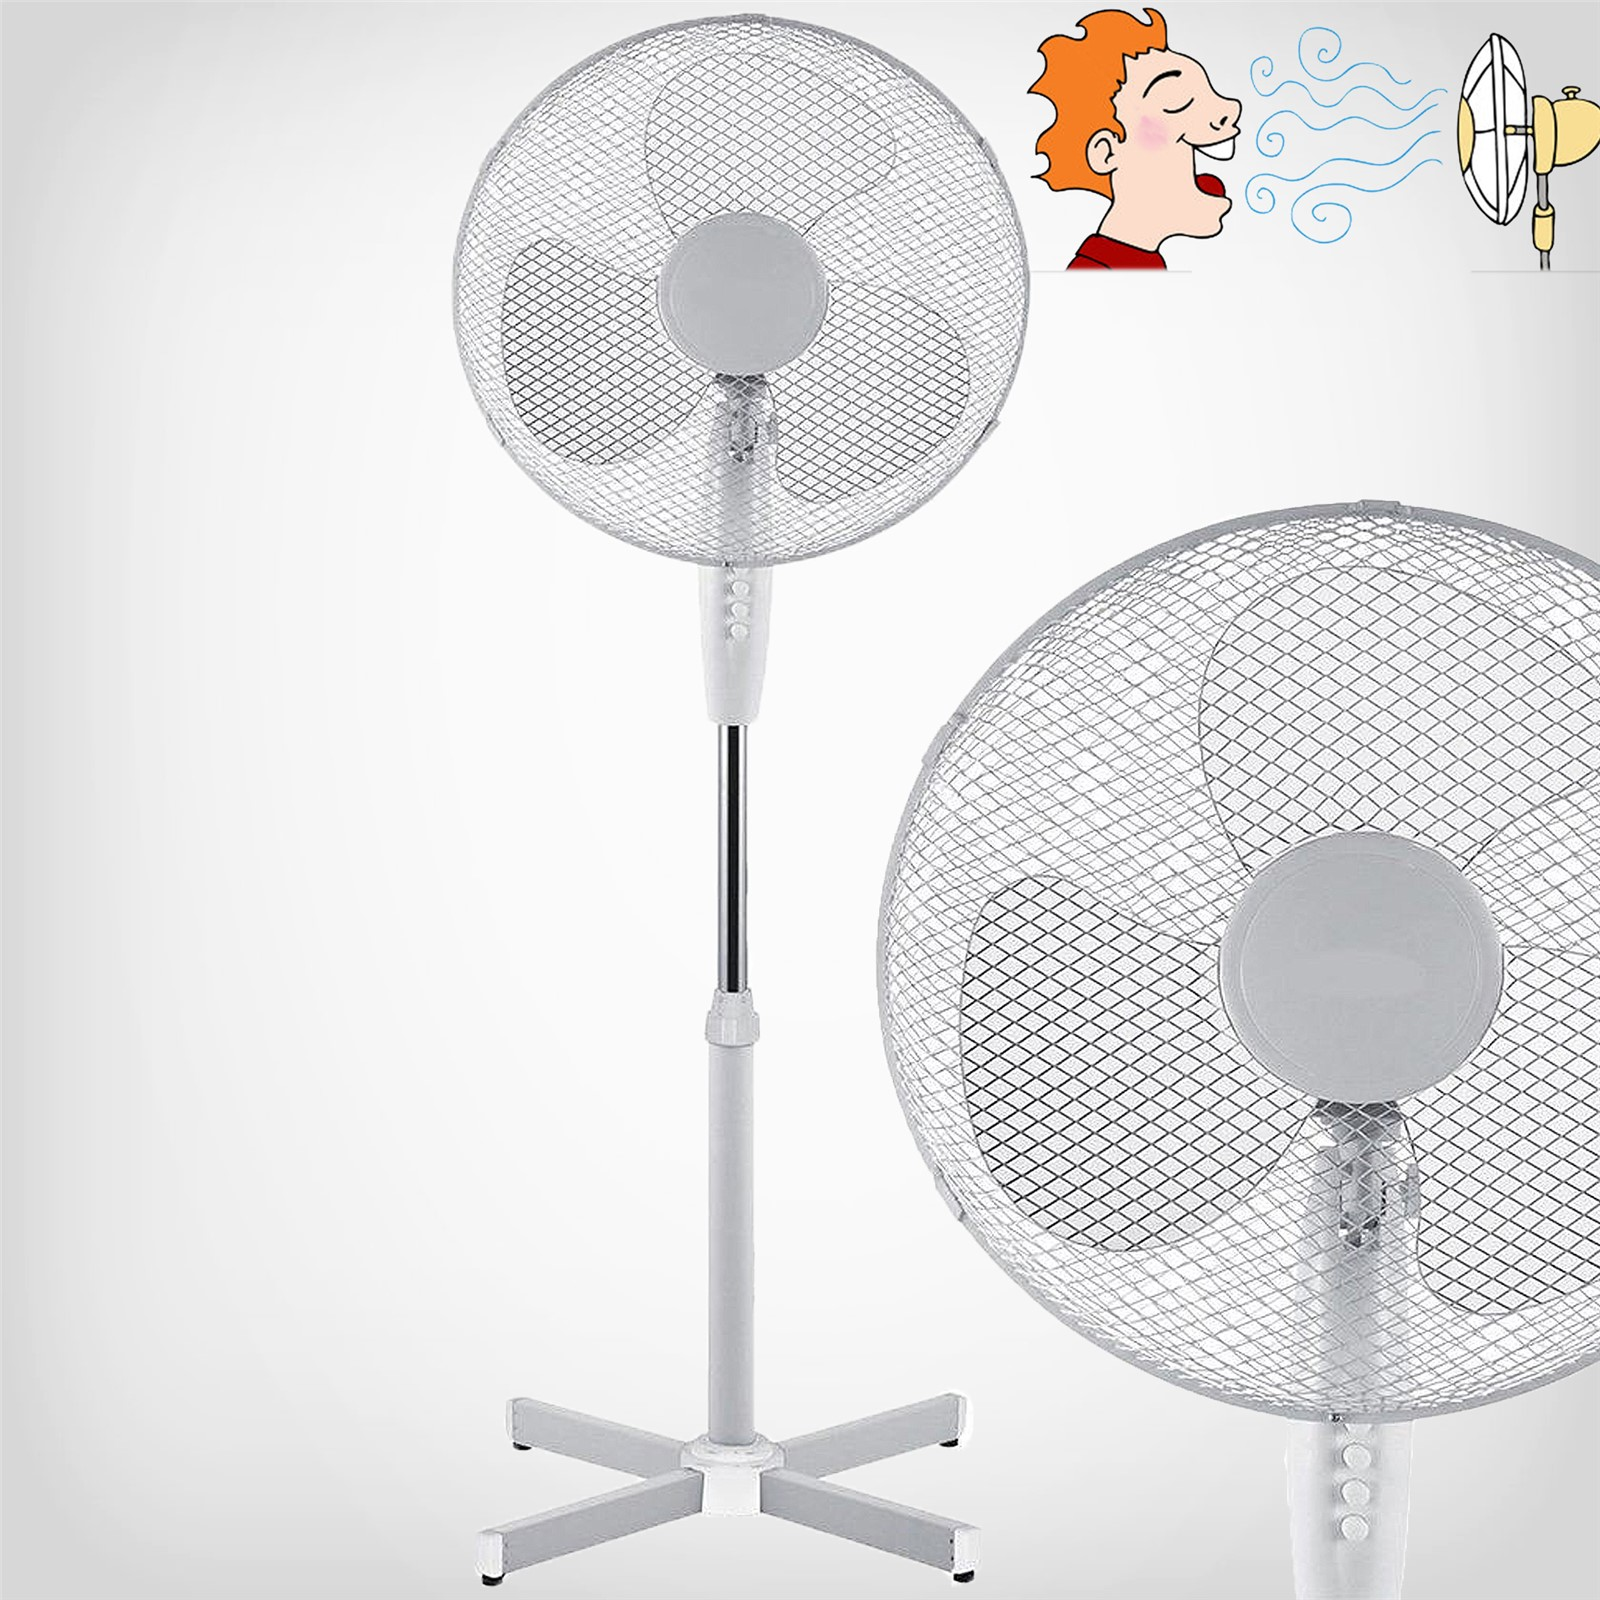 Desk Tower Fan : Electric oscillating fans extandable tower desk standing